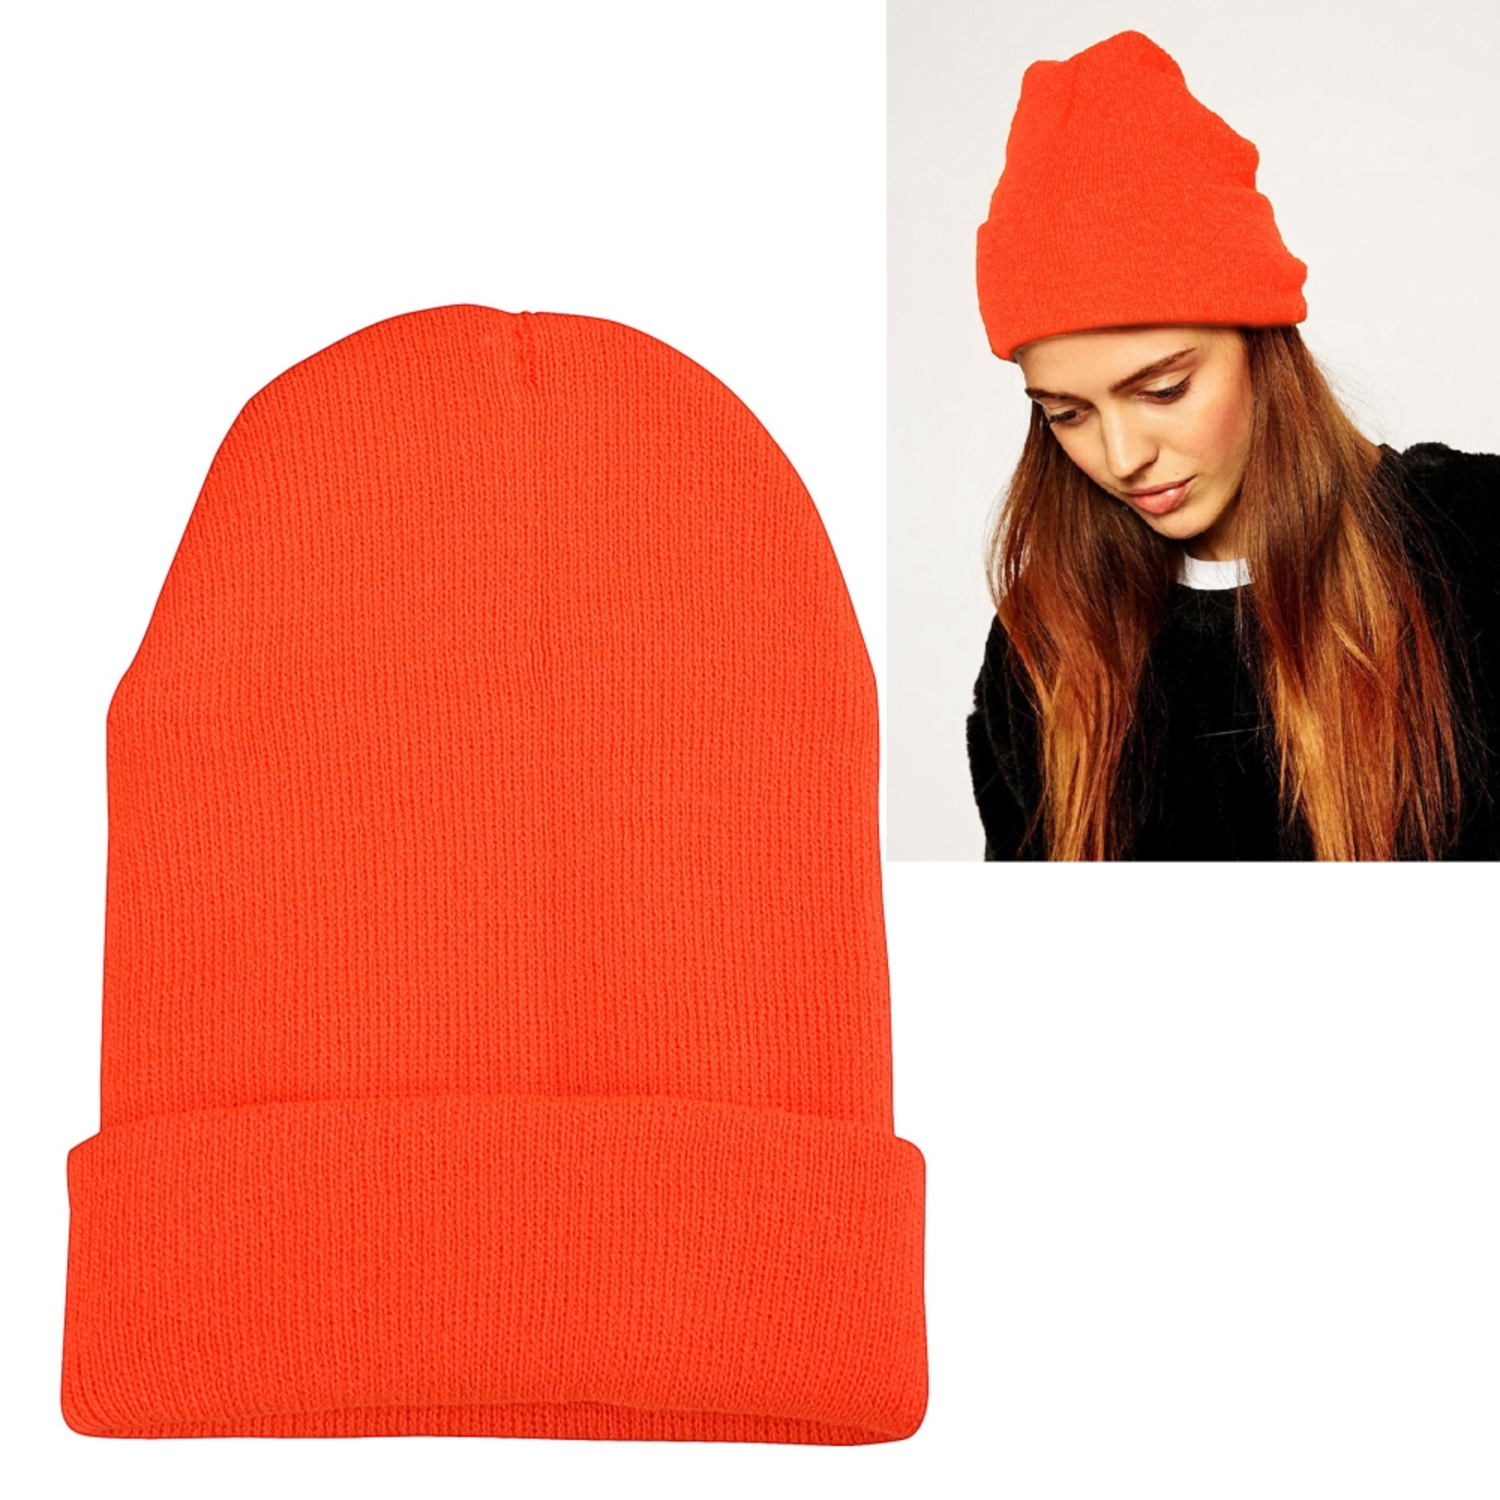 Zodaca Orange Unisex Knitted Beanie Hat